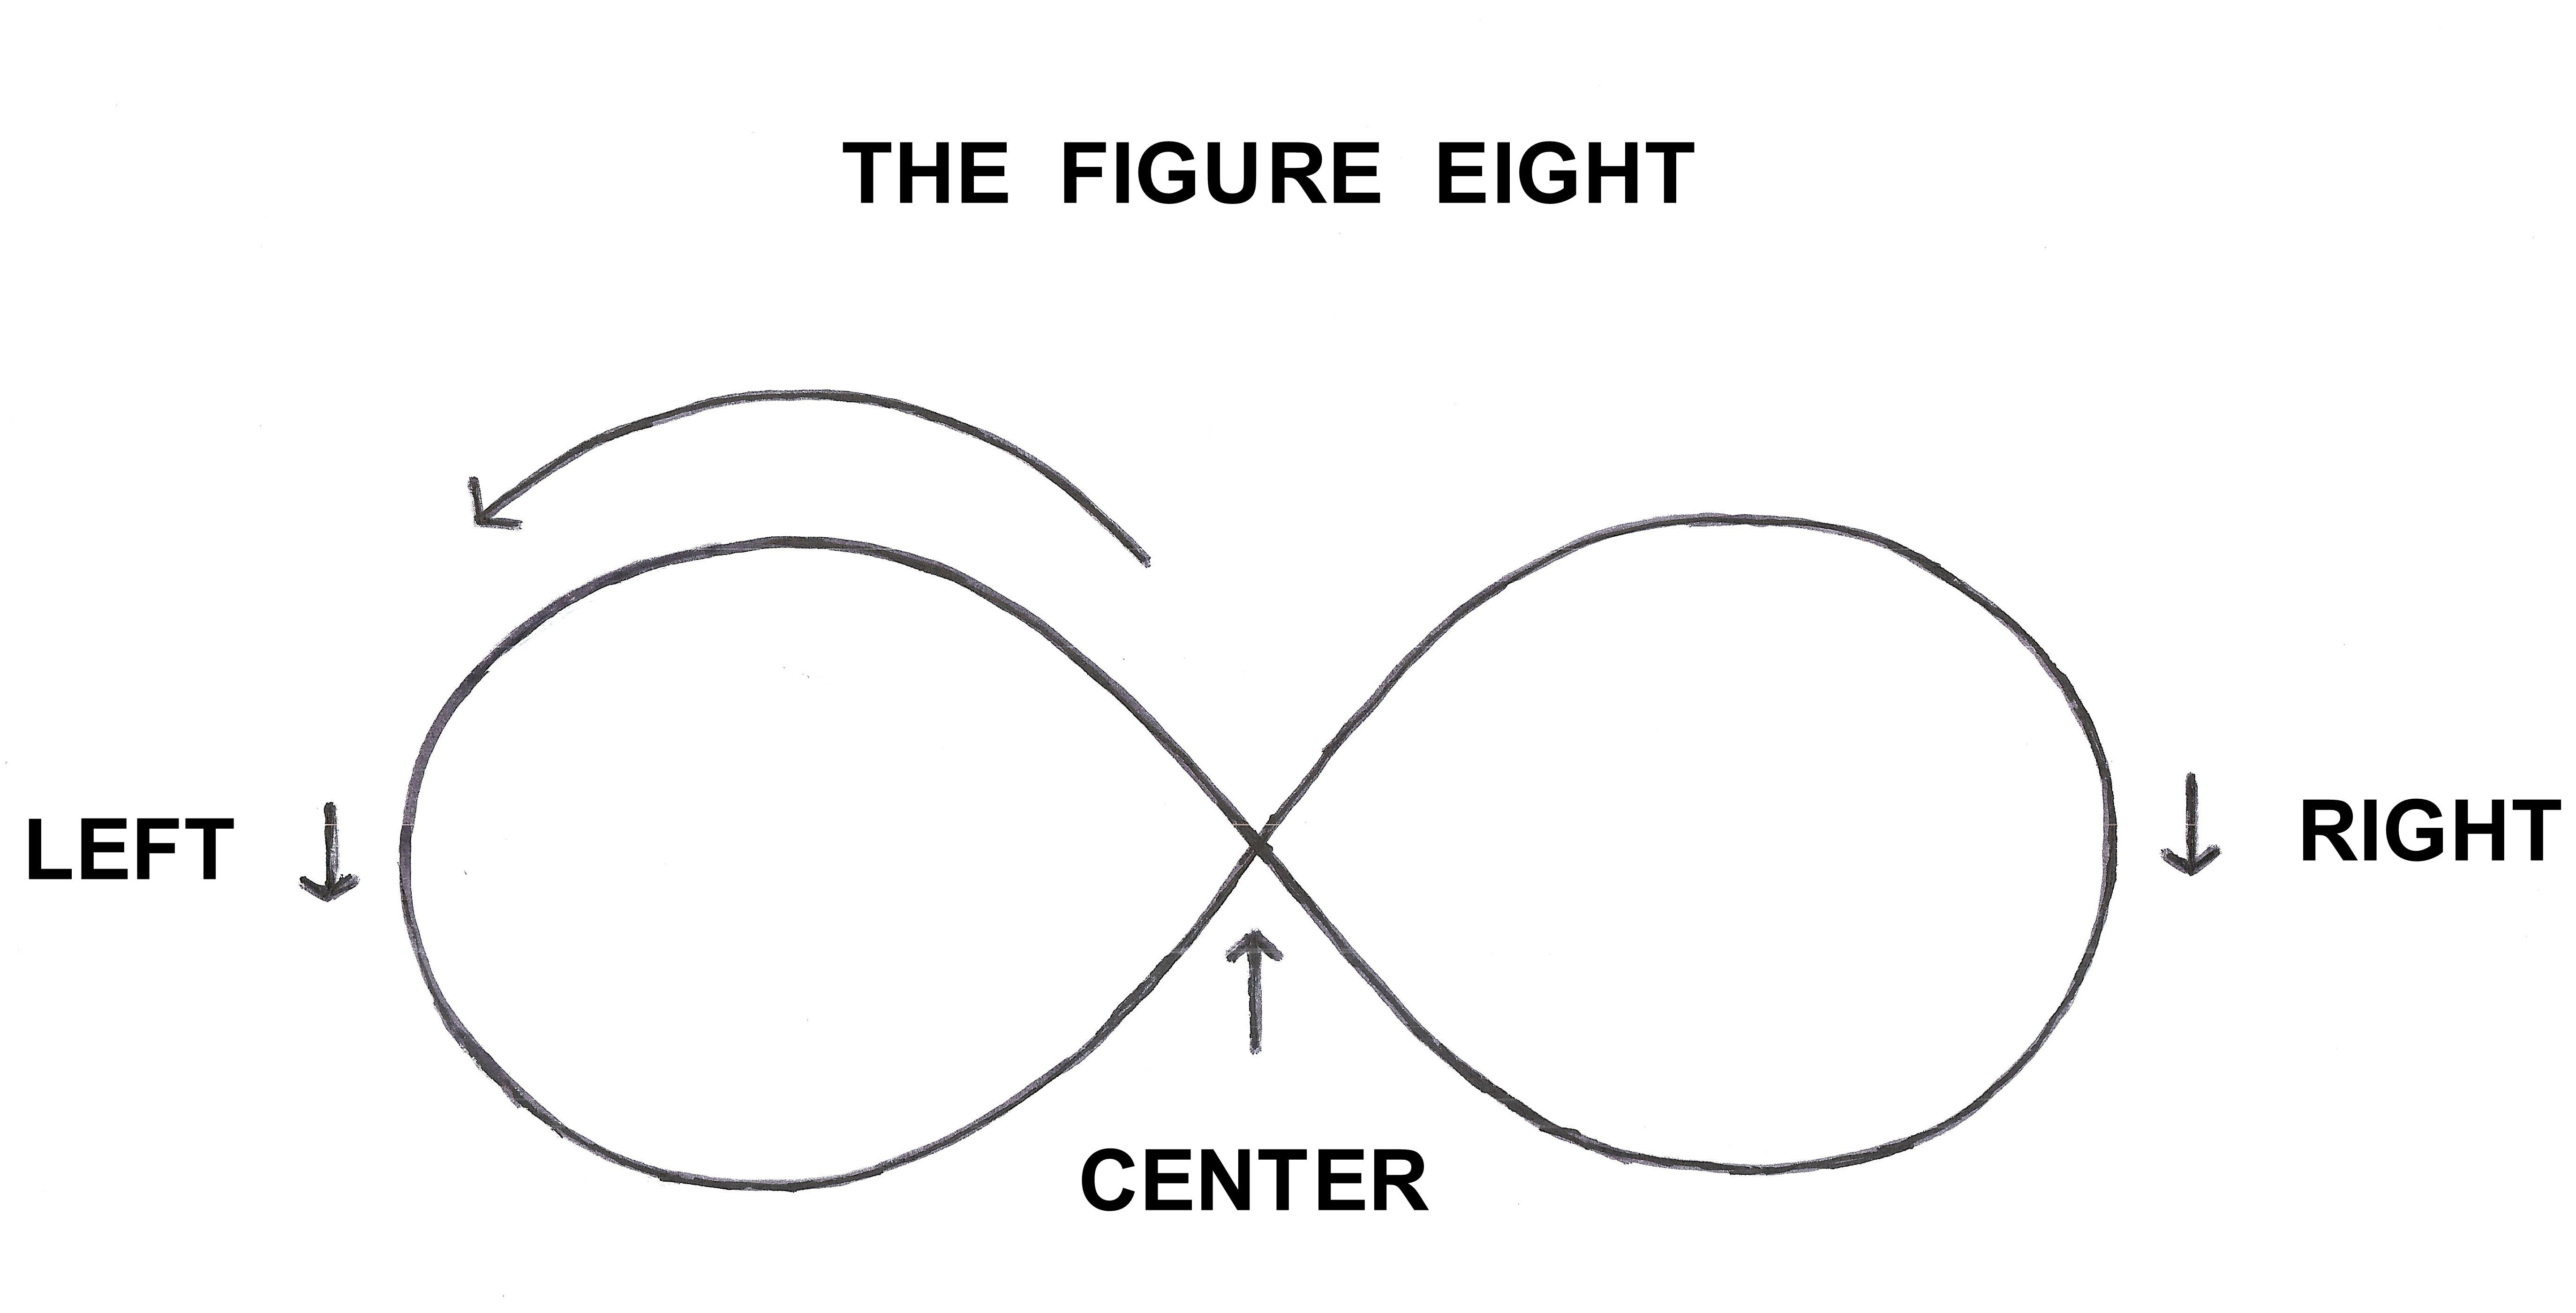 THE FIGURE EIGHT (Infinity Swing)